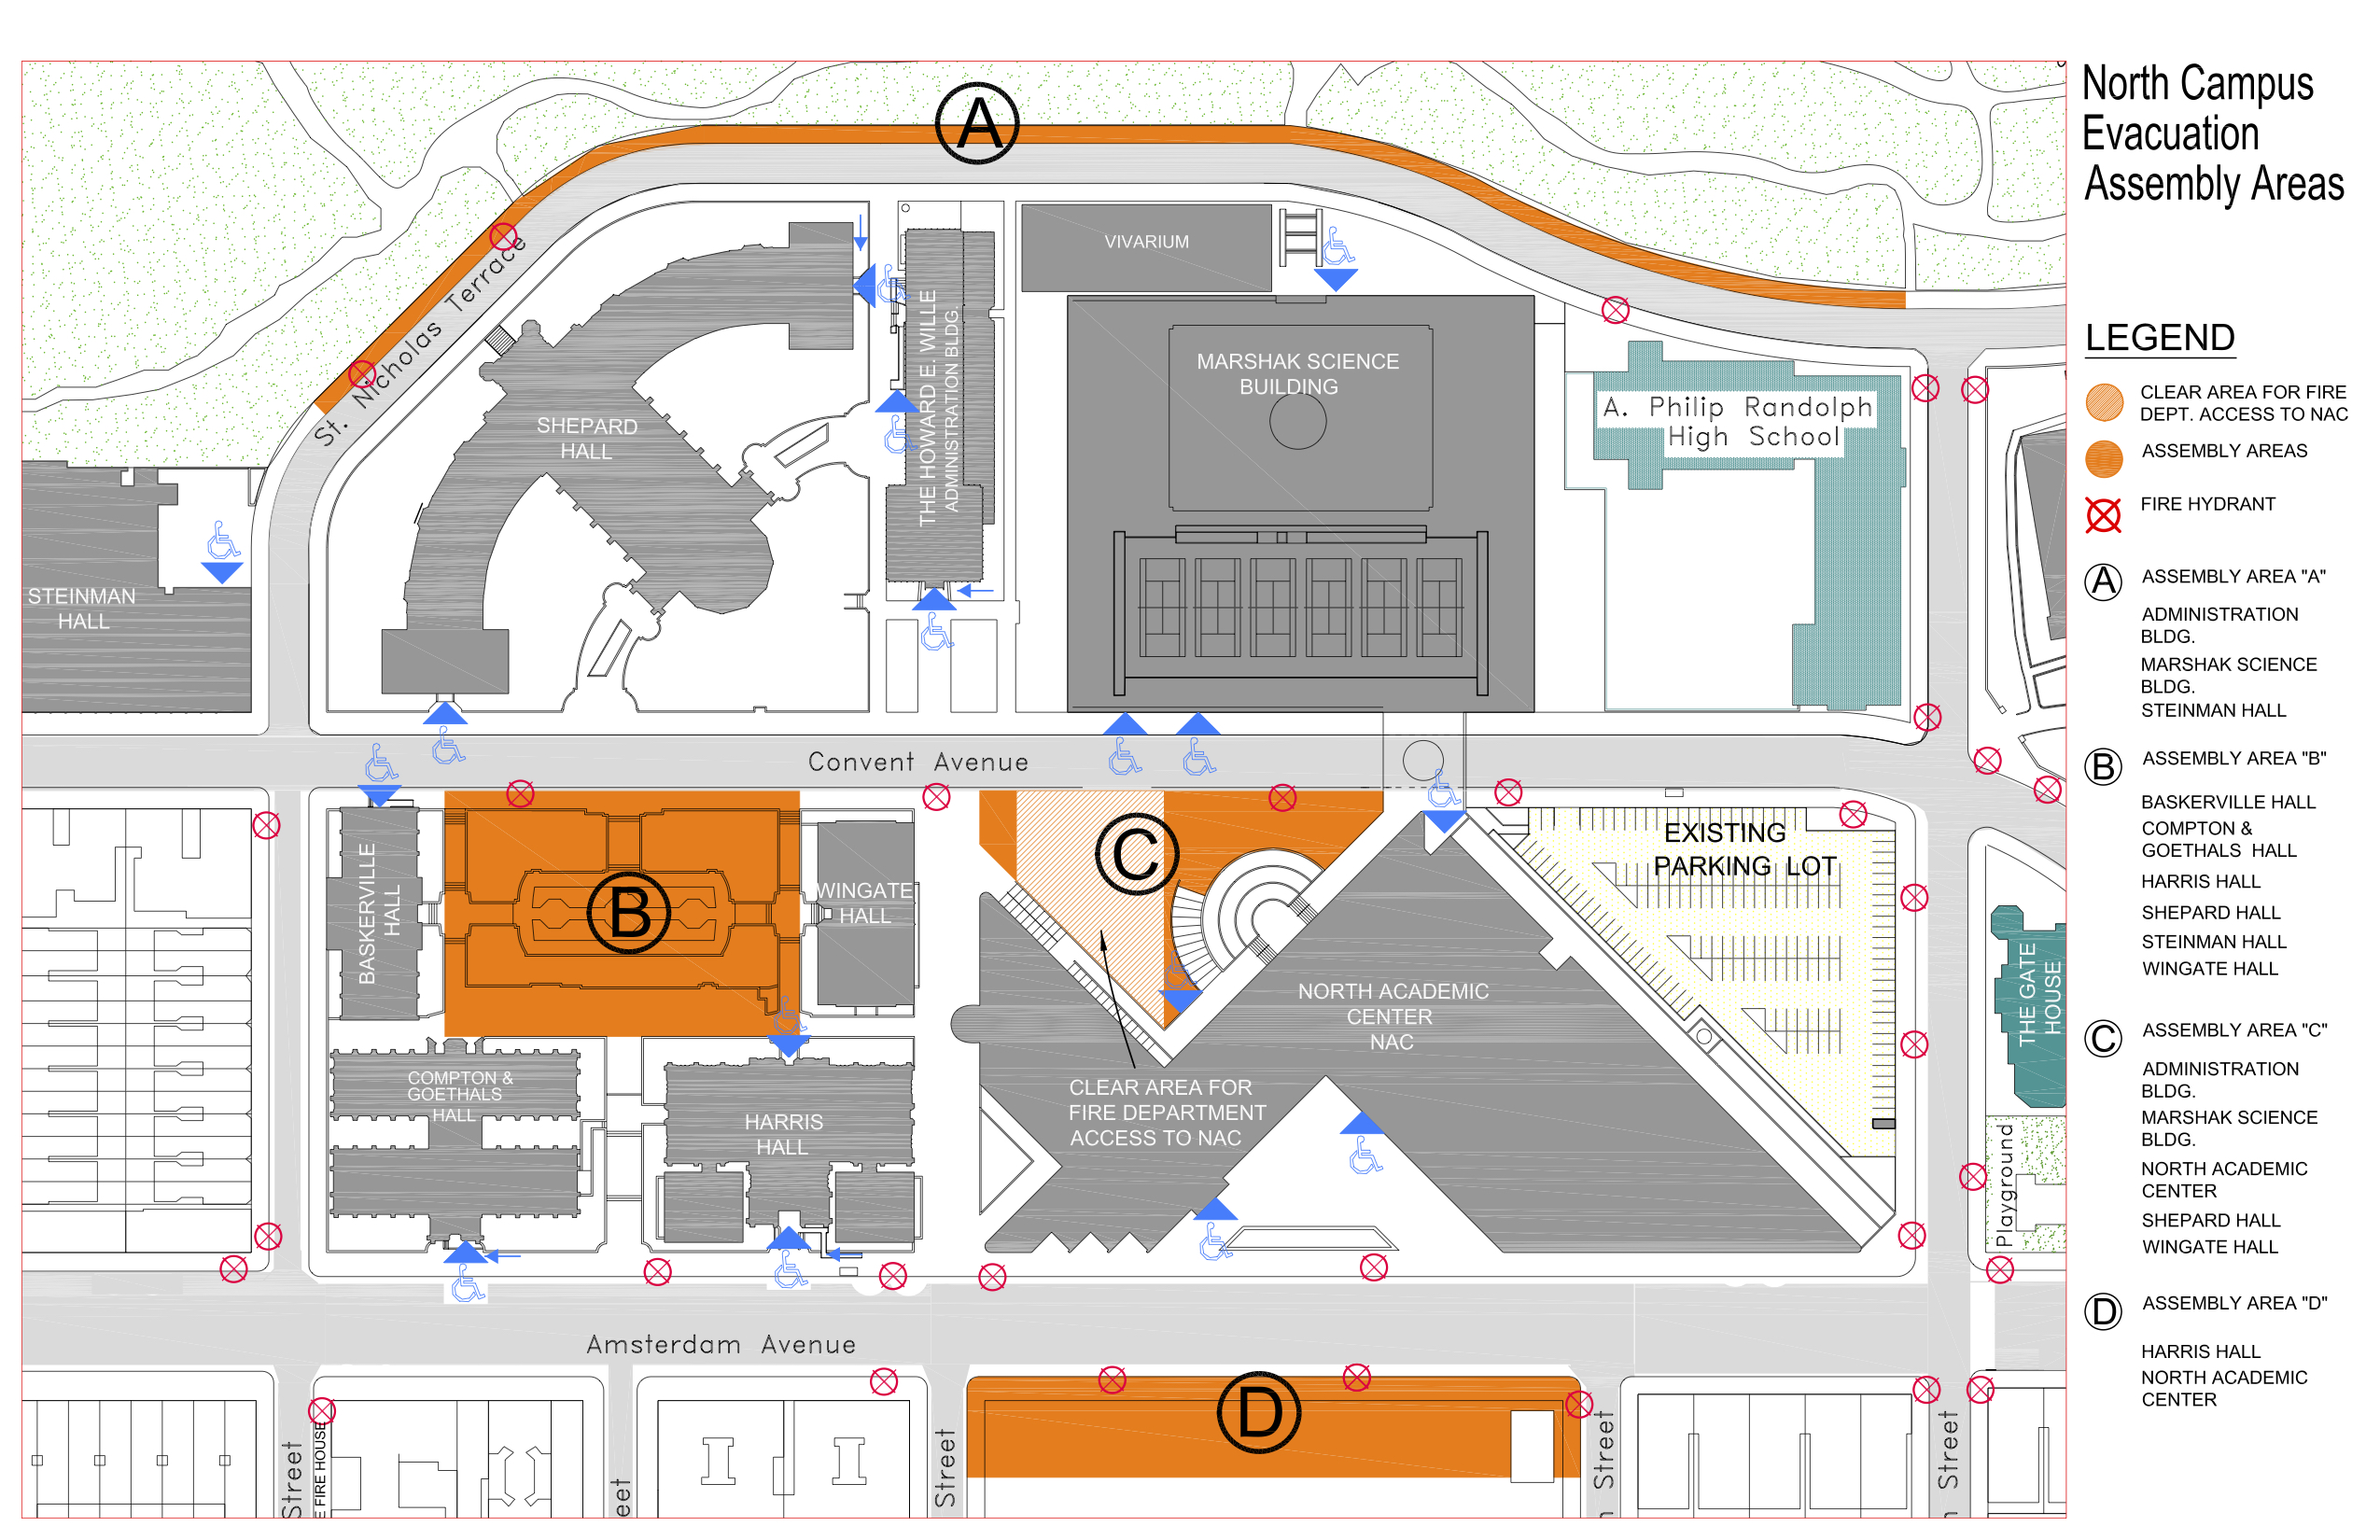 Campus Map - Assembly Areas - North Campus